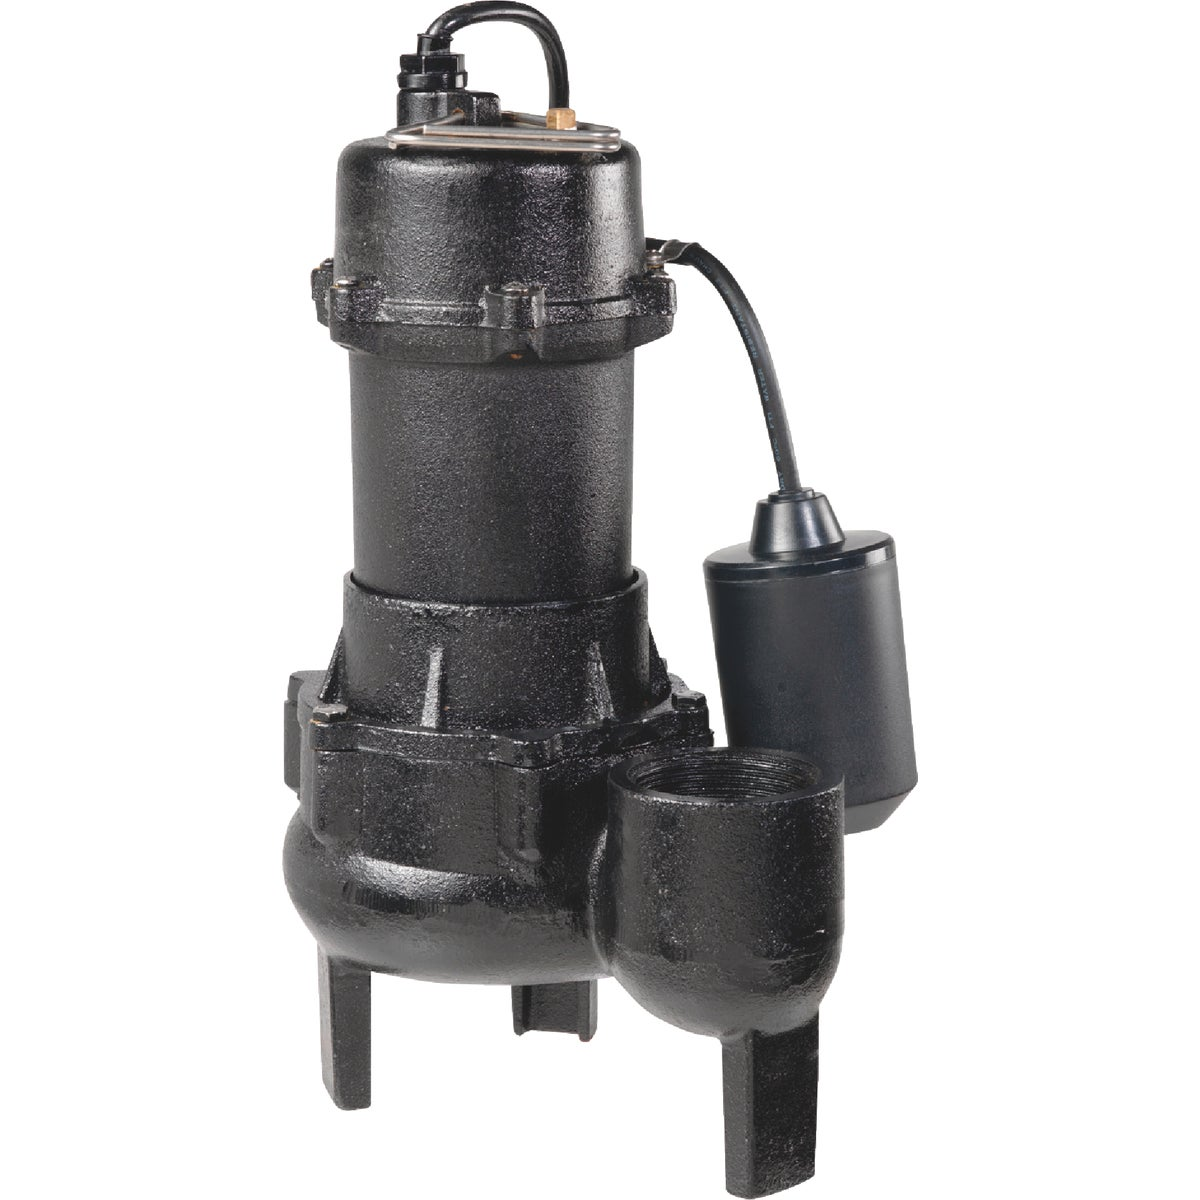 SEWAGE PUMP - RPP50 by Wayne Water Systems